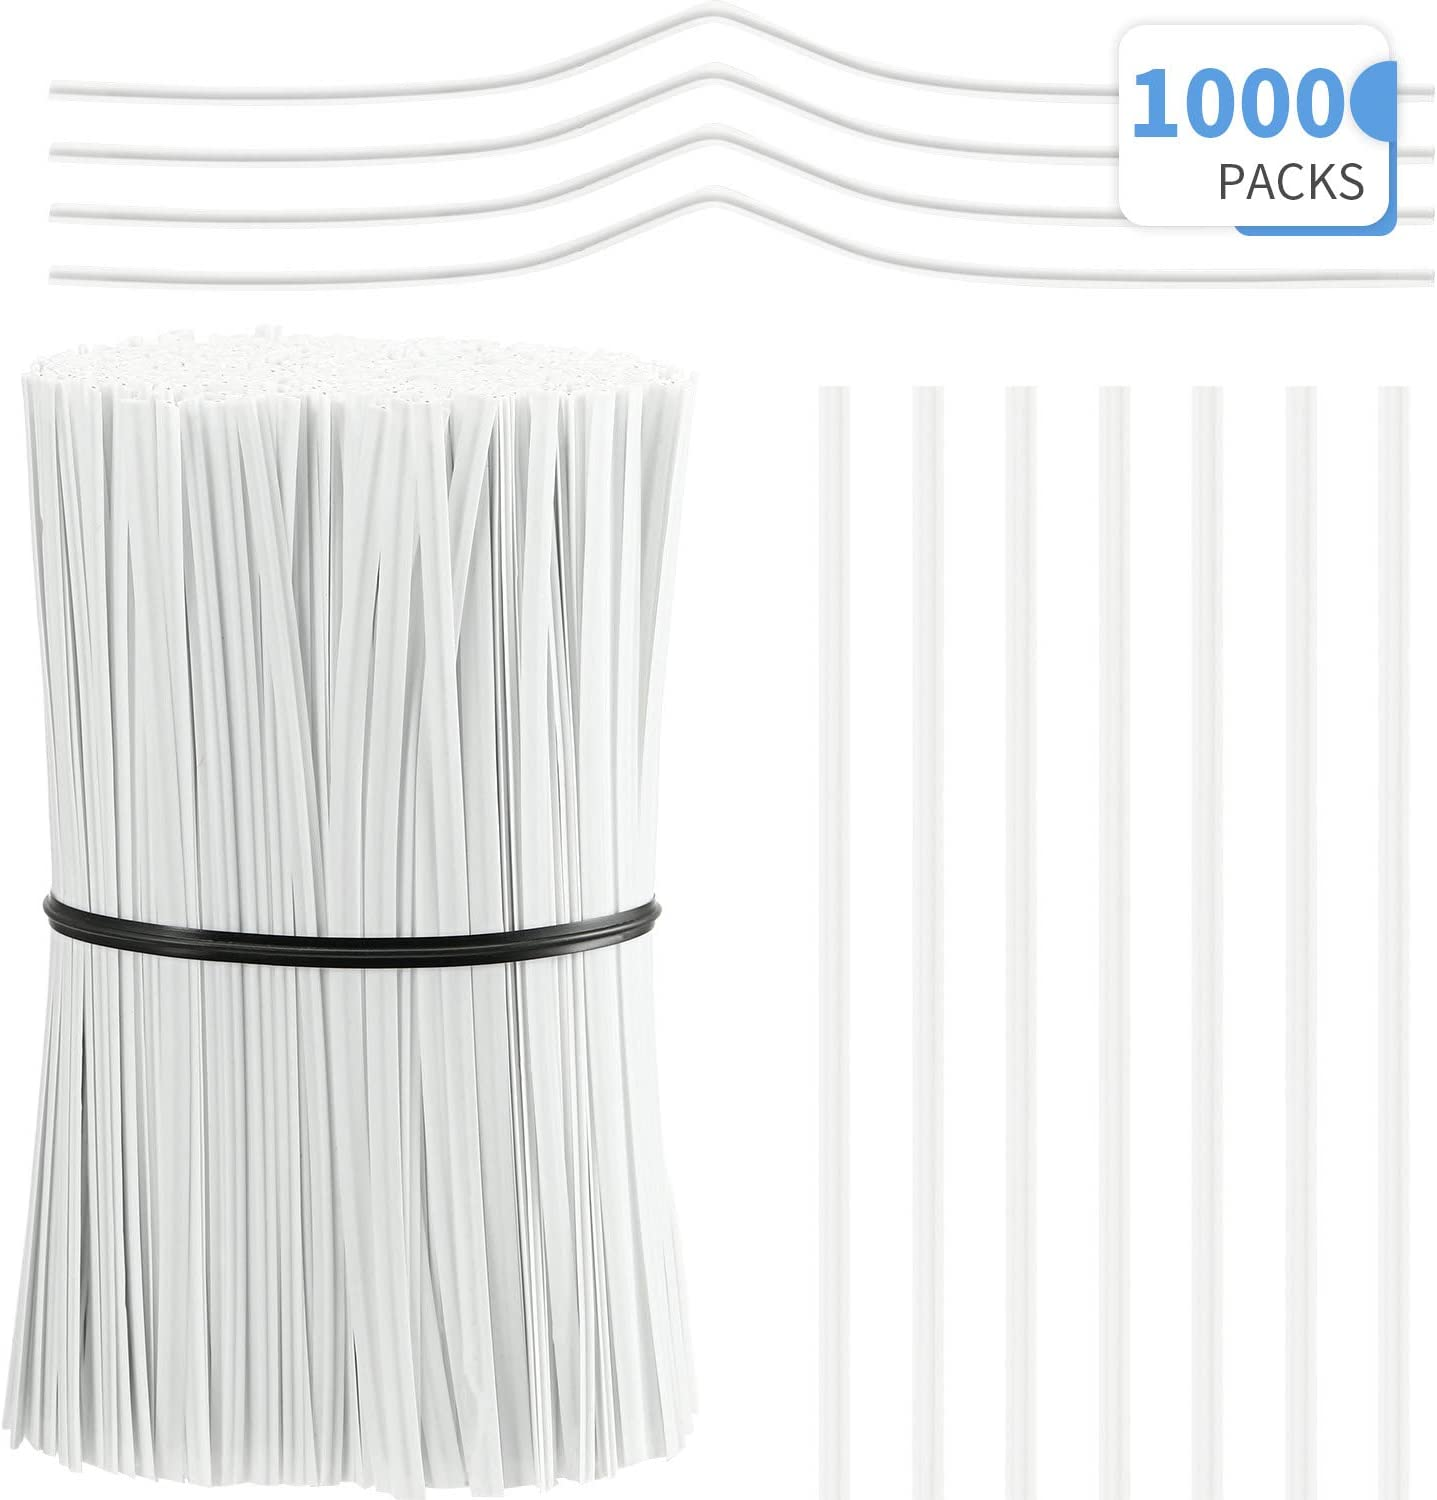 3.9 Inch Length White 1000 Pieces Plastic Coated Twist Ties Twist Cord Wire Cable Ties Reusable Nose Bridge Strips for Party Cello Candy Bread Bags Cake Pops